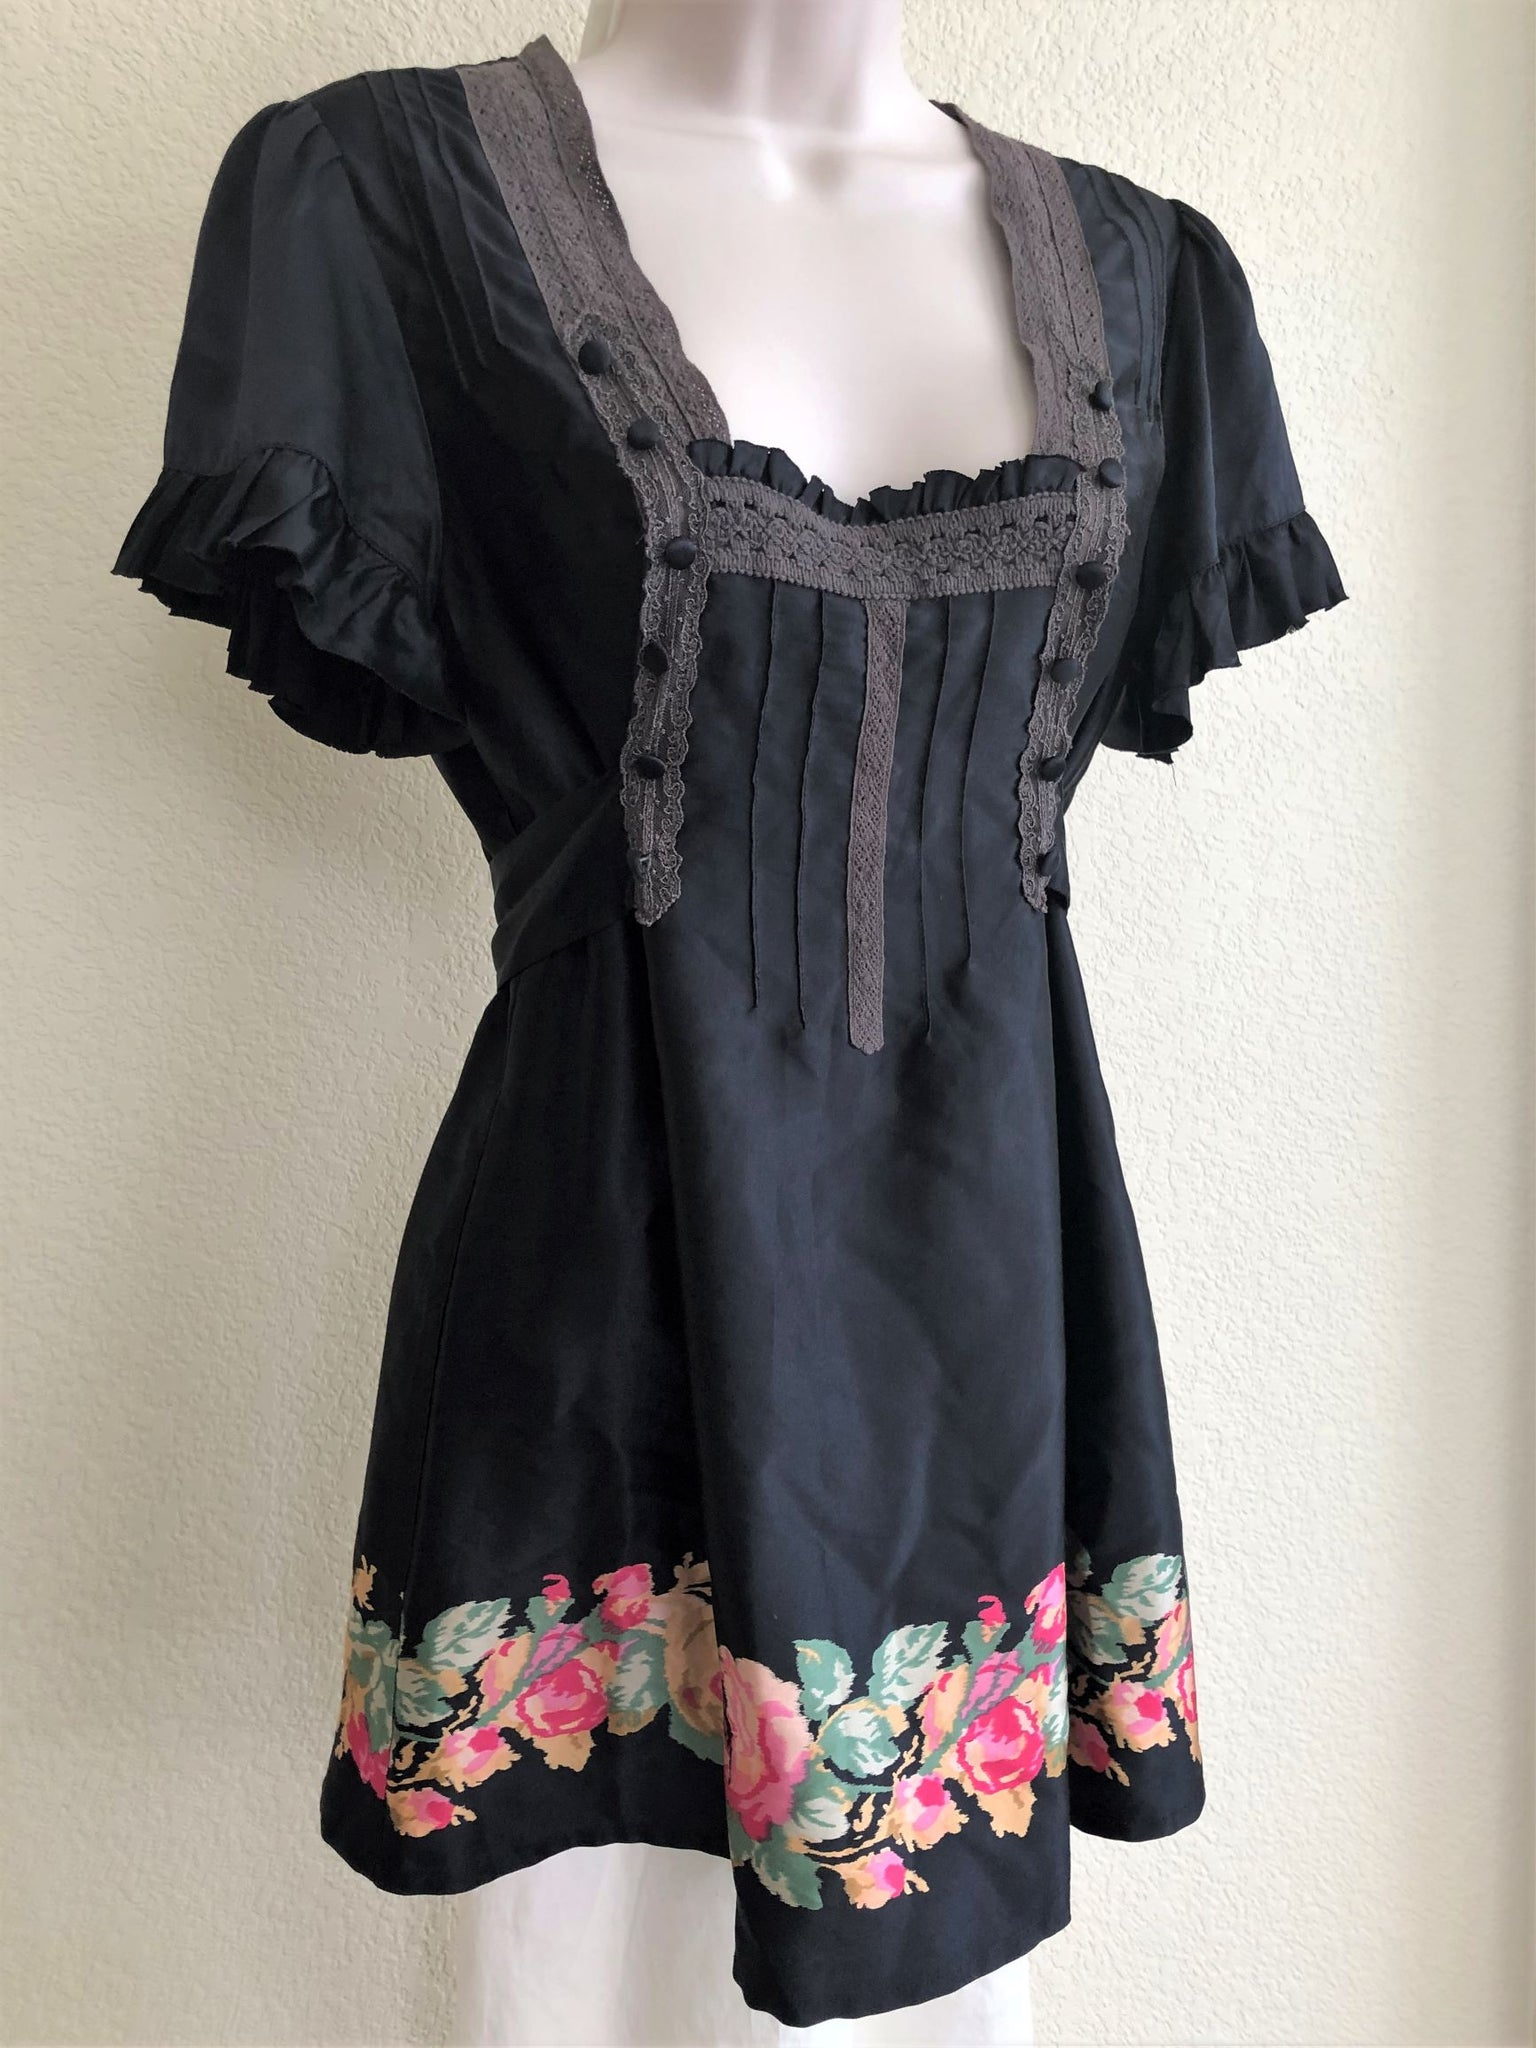 Free People Size 6 Black Silk Floral Top